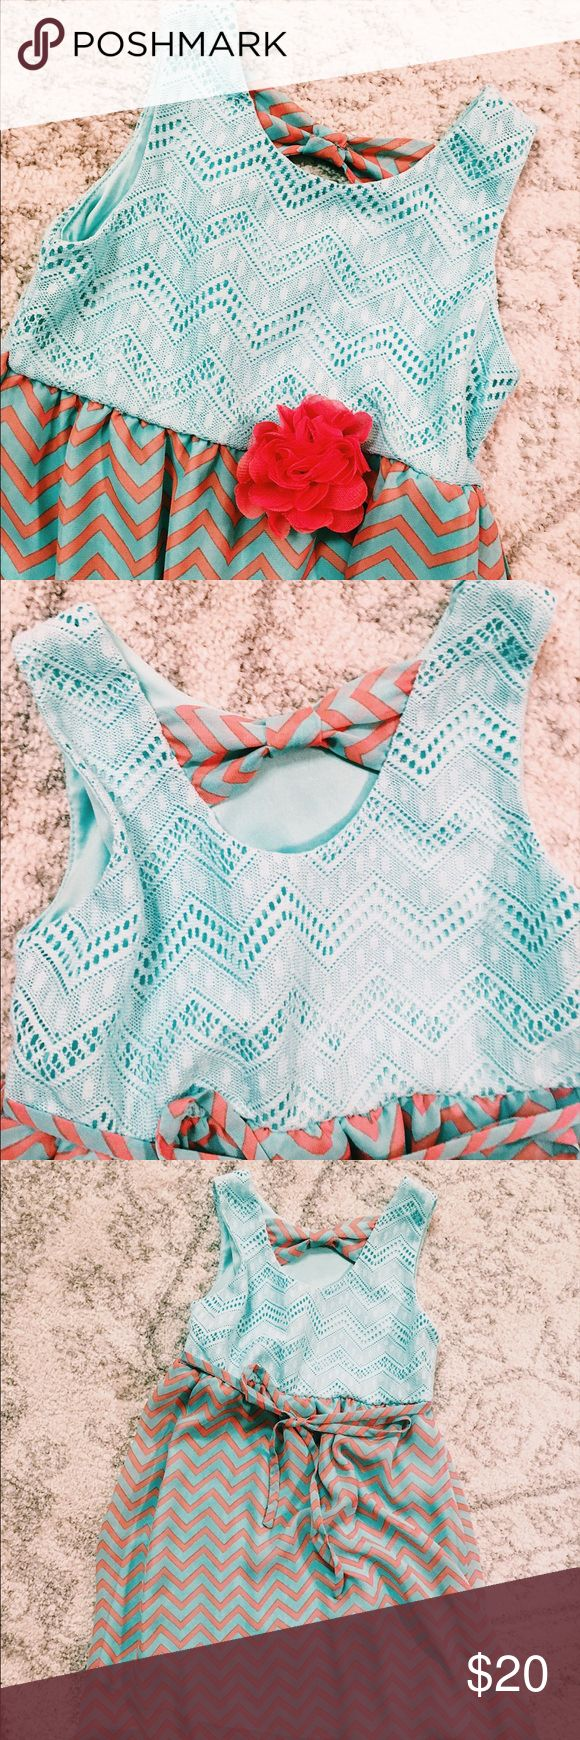 High low bow back dress Super cute chevron high low dress. Perfect condition. Never worn Rare Editions Dresses